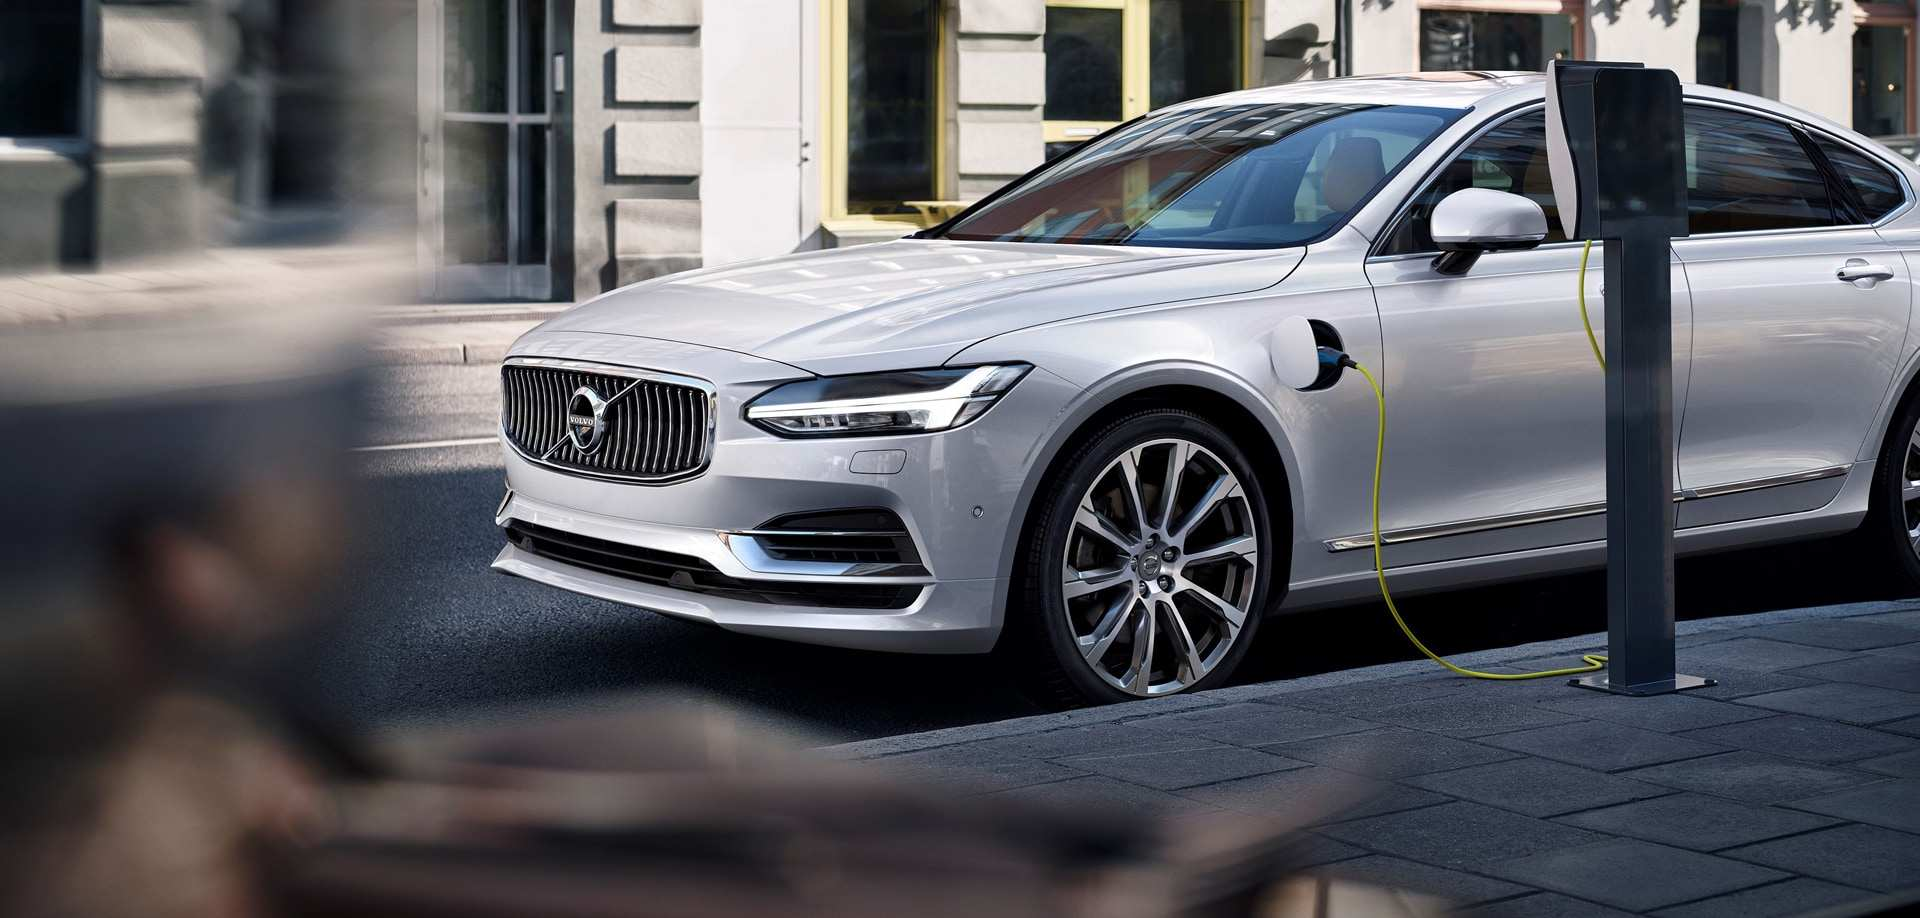 47 Concept of The Volvo Phev 2019 Performance And New Engine Pricing for The Volvo Phev 2019 Performance And New Engine